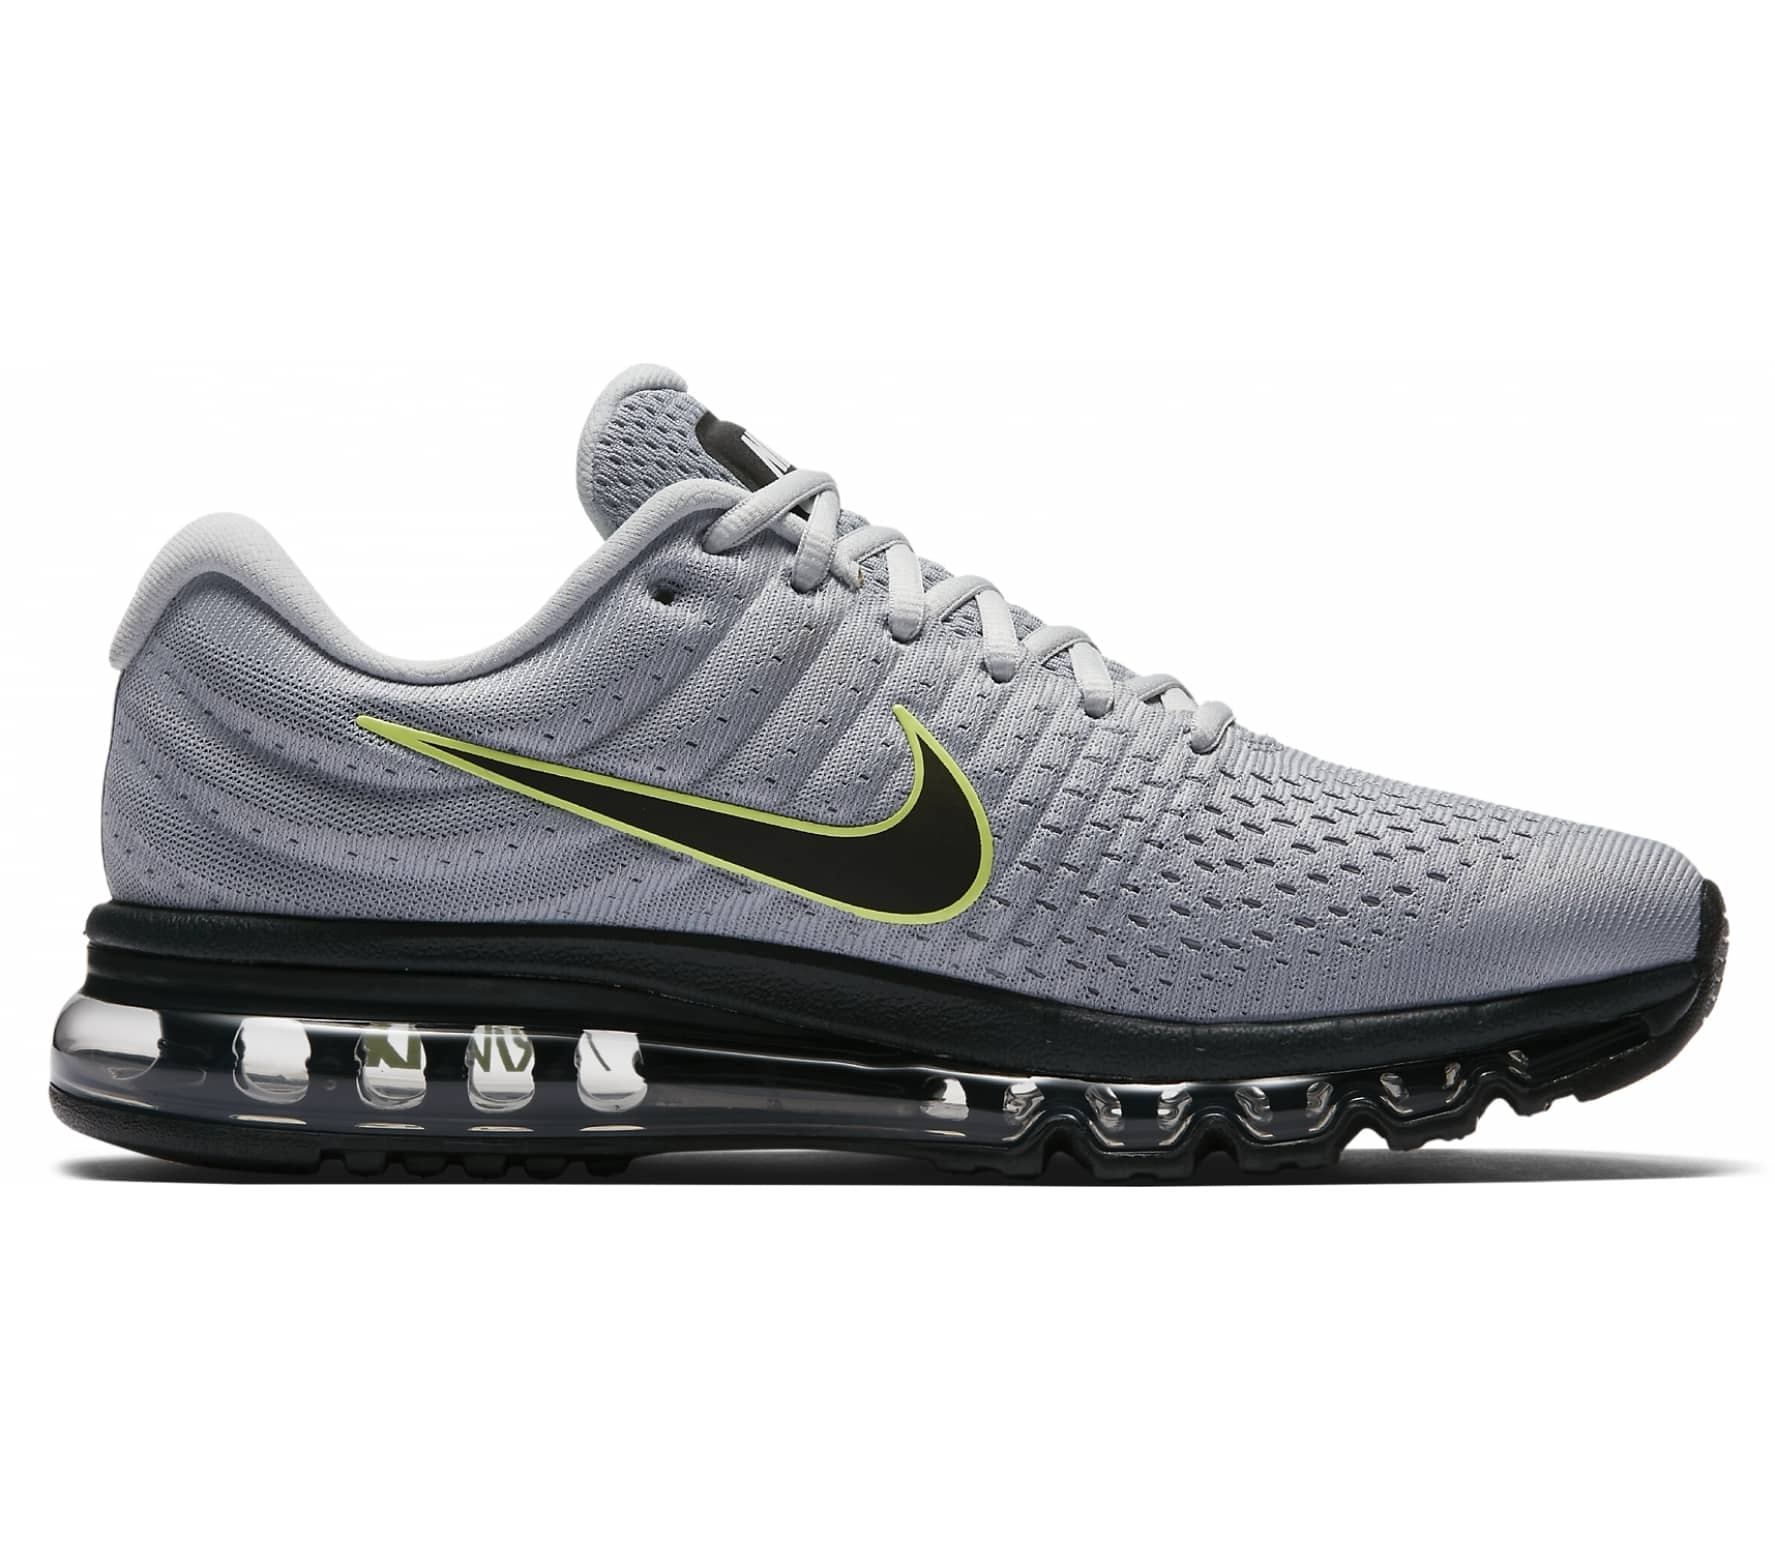 huge selection of 83366 9a2d4 Nike - Air Max 2017 Herren Laufschuh (grau schwarz)